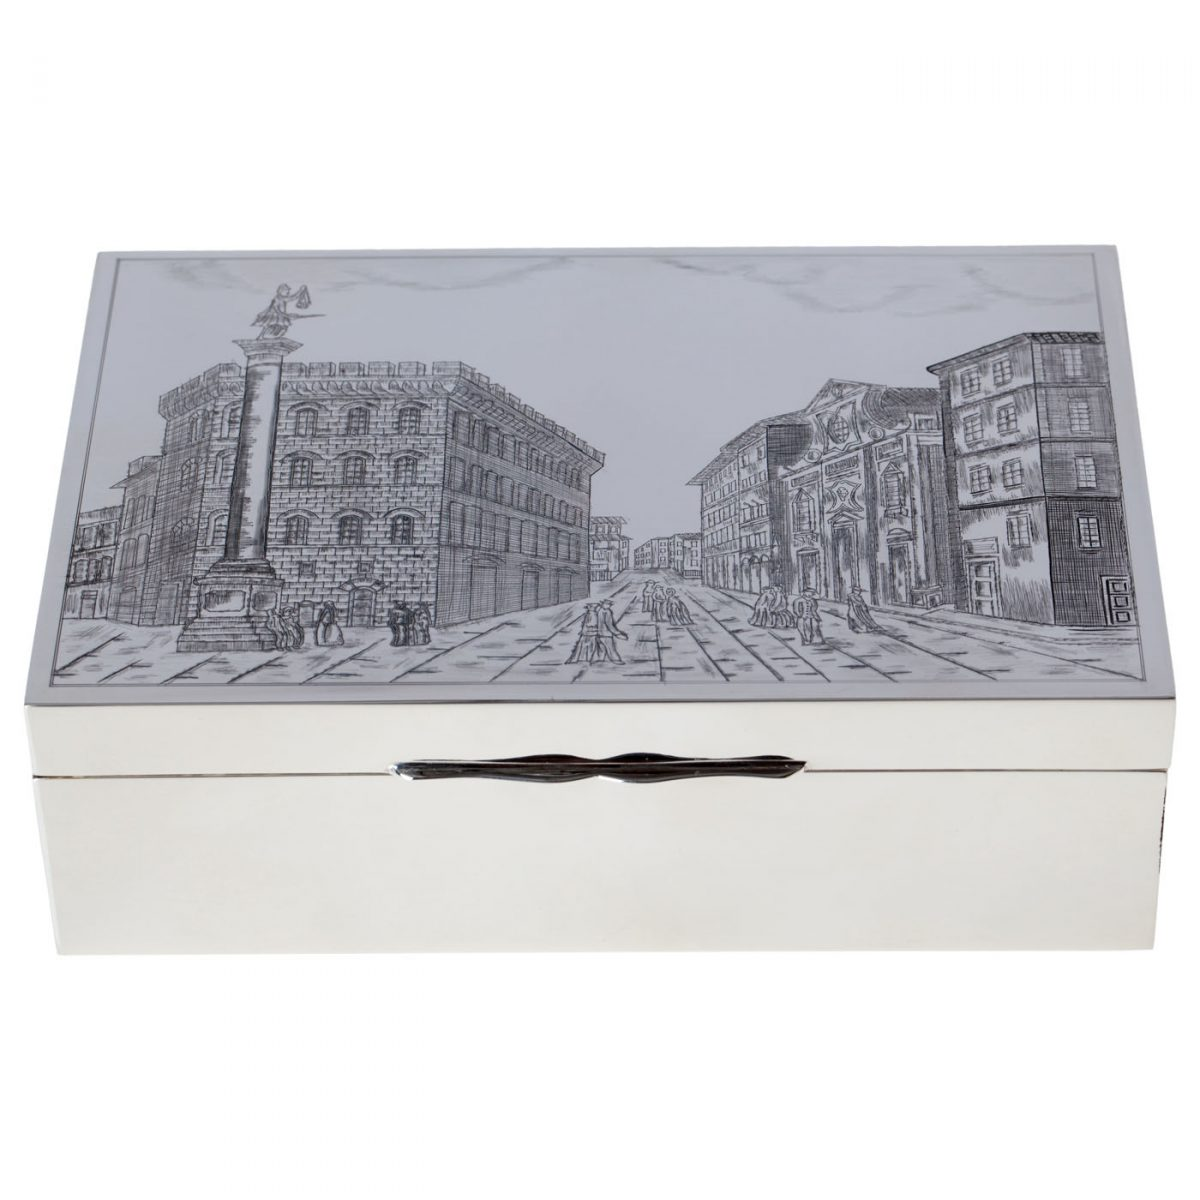 Sterling silver box with engraved scene